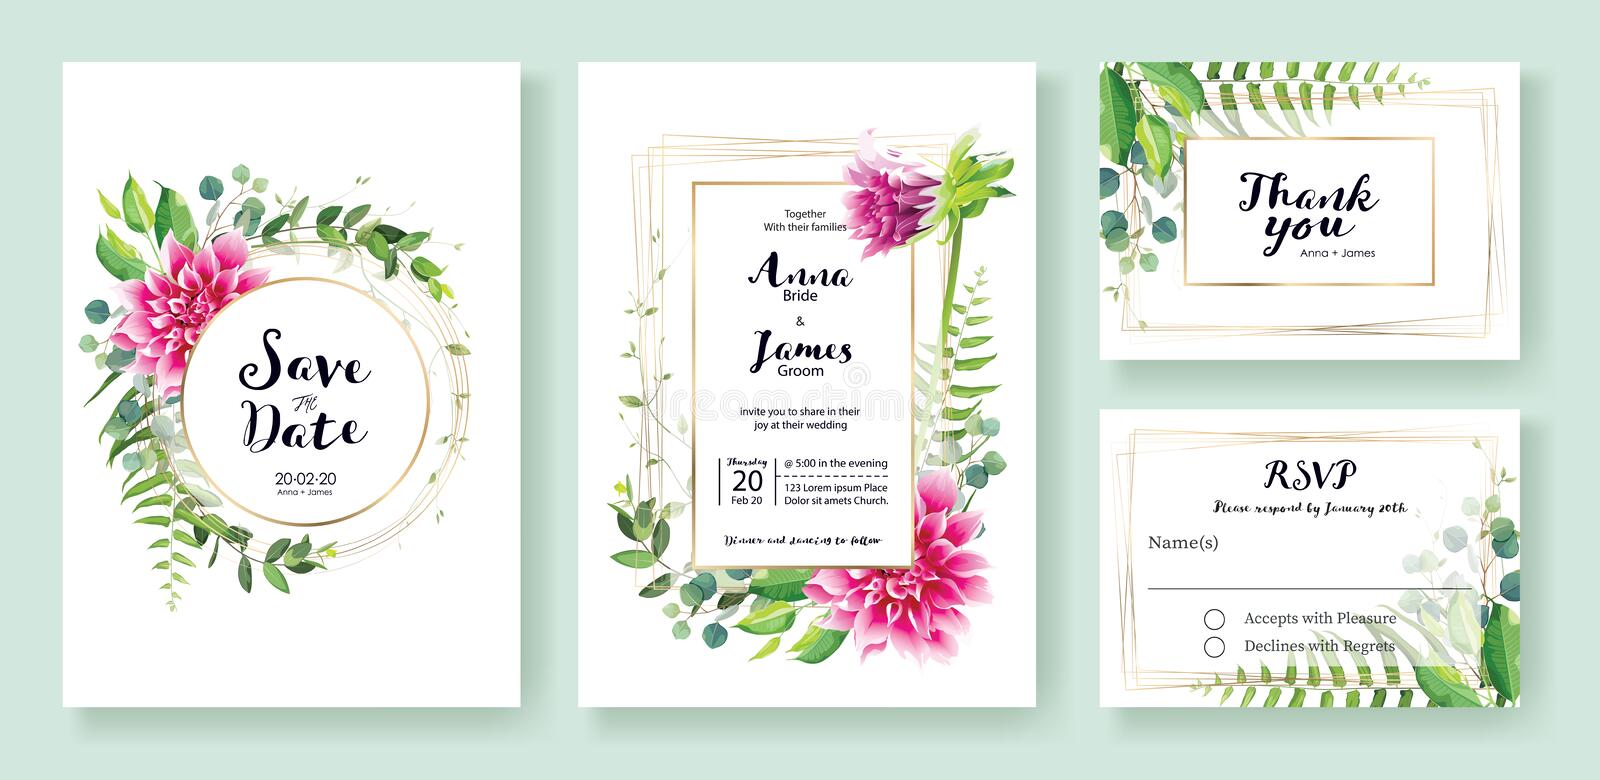 Wedding Invitation, save the date, thank you, rsvp card Design template. Vector. Pink dahlia flowers, fern leaf, silver dollar lea. Ves, Ivy plants royalty free illustration